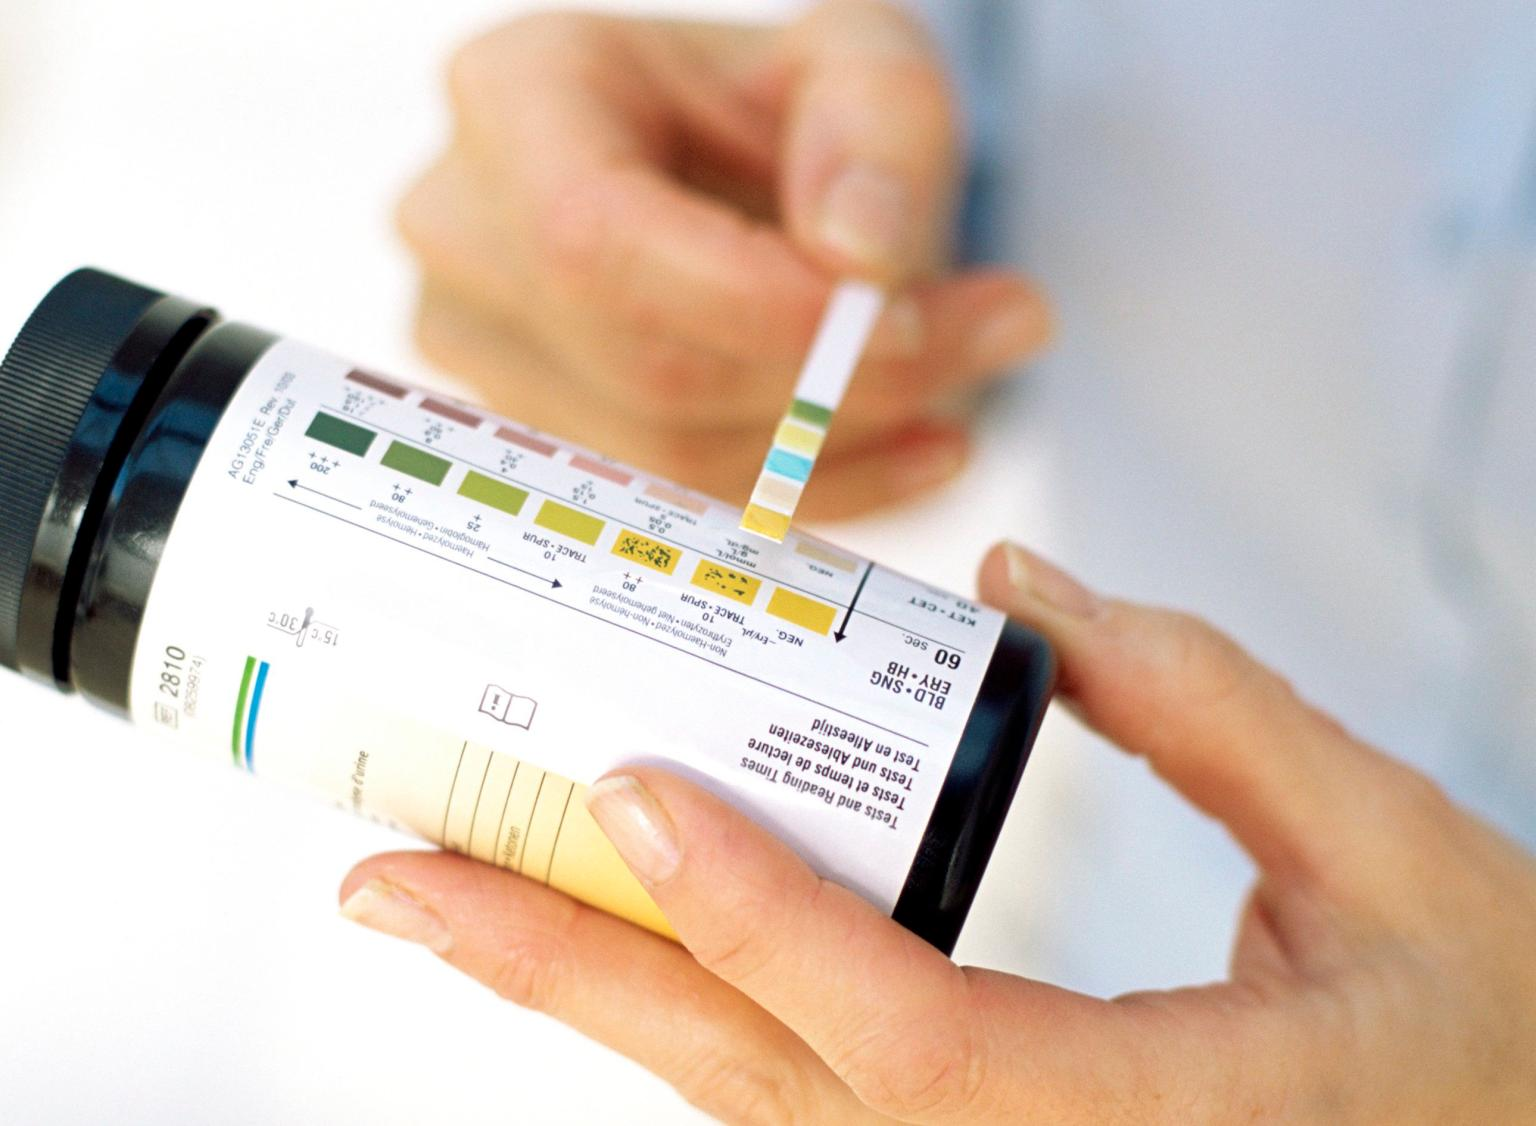 Lack of glucose in your blood may cause you severe illnesses